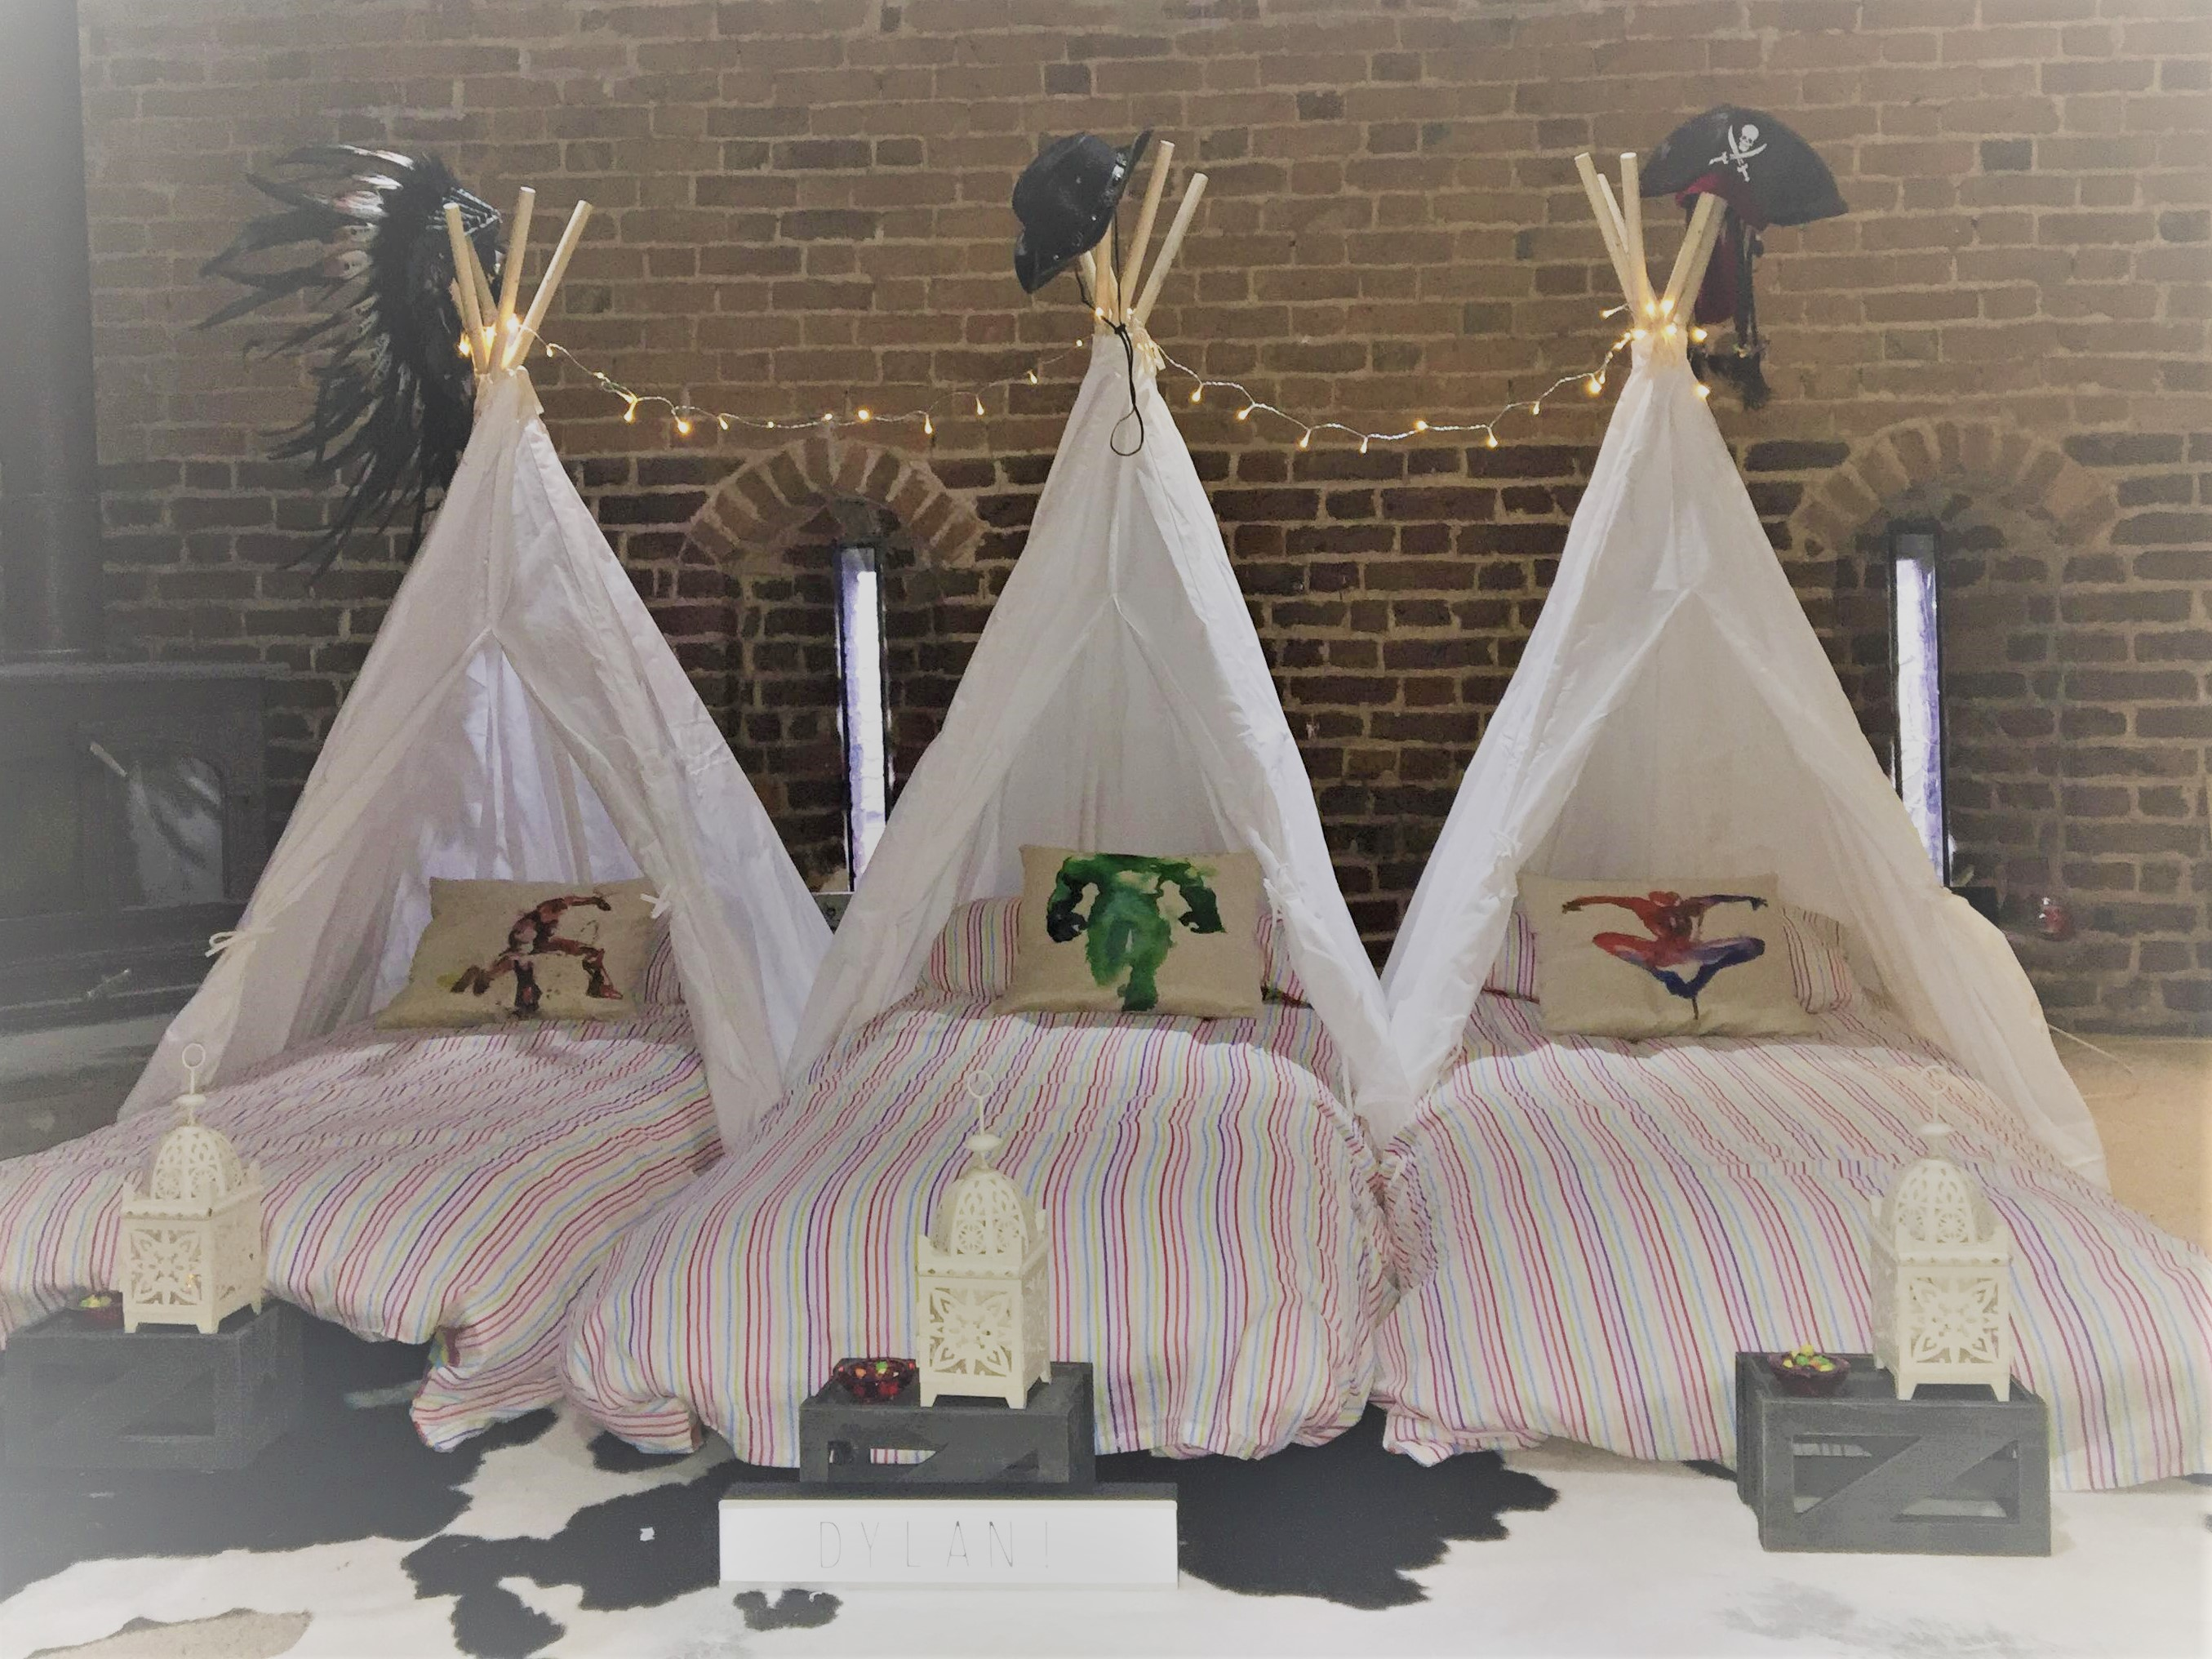 inside tipis with boys decorations